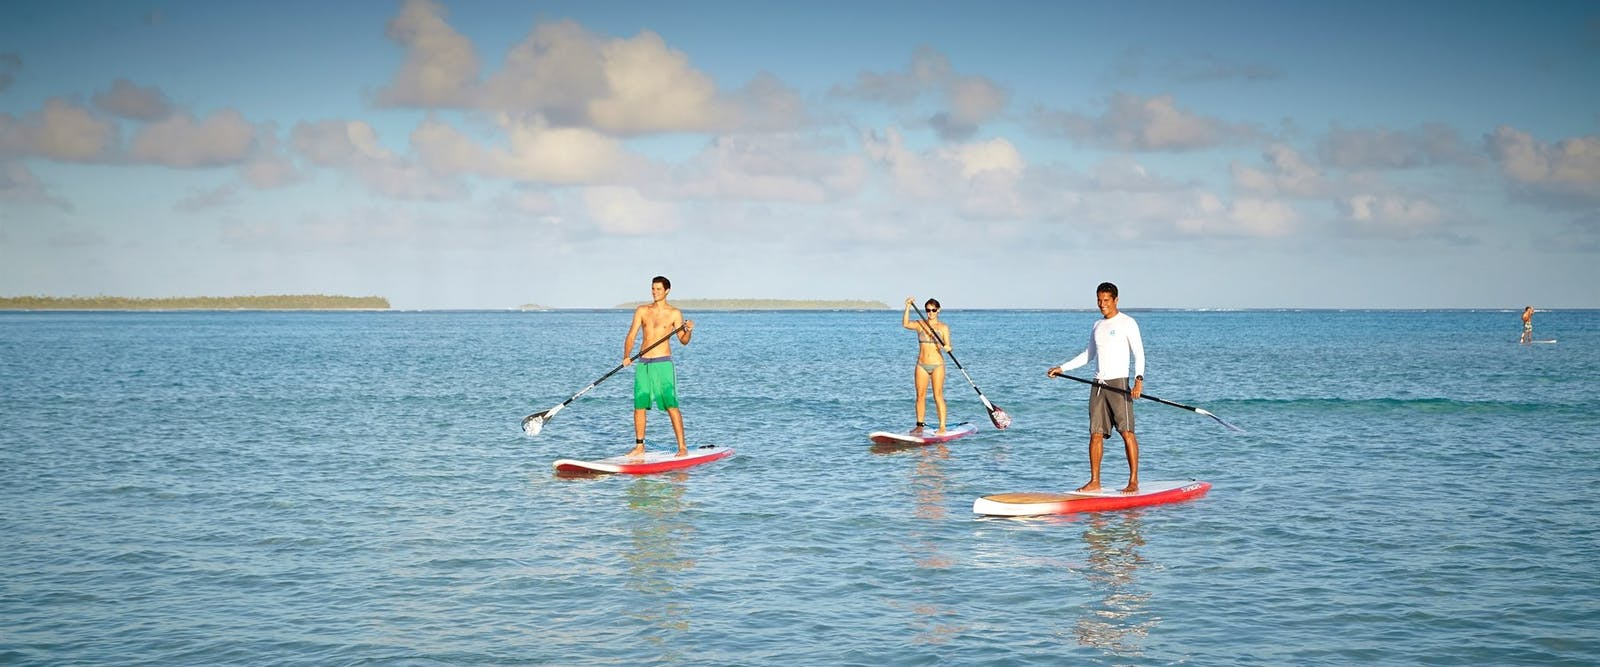 Paddle boarding at The Brando, Tahiti, French Polynesia